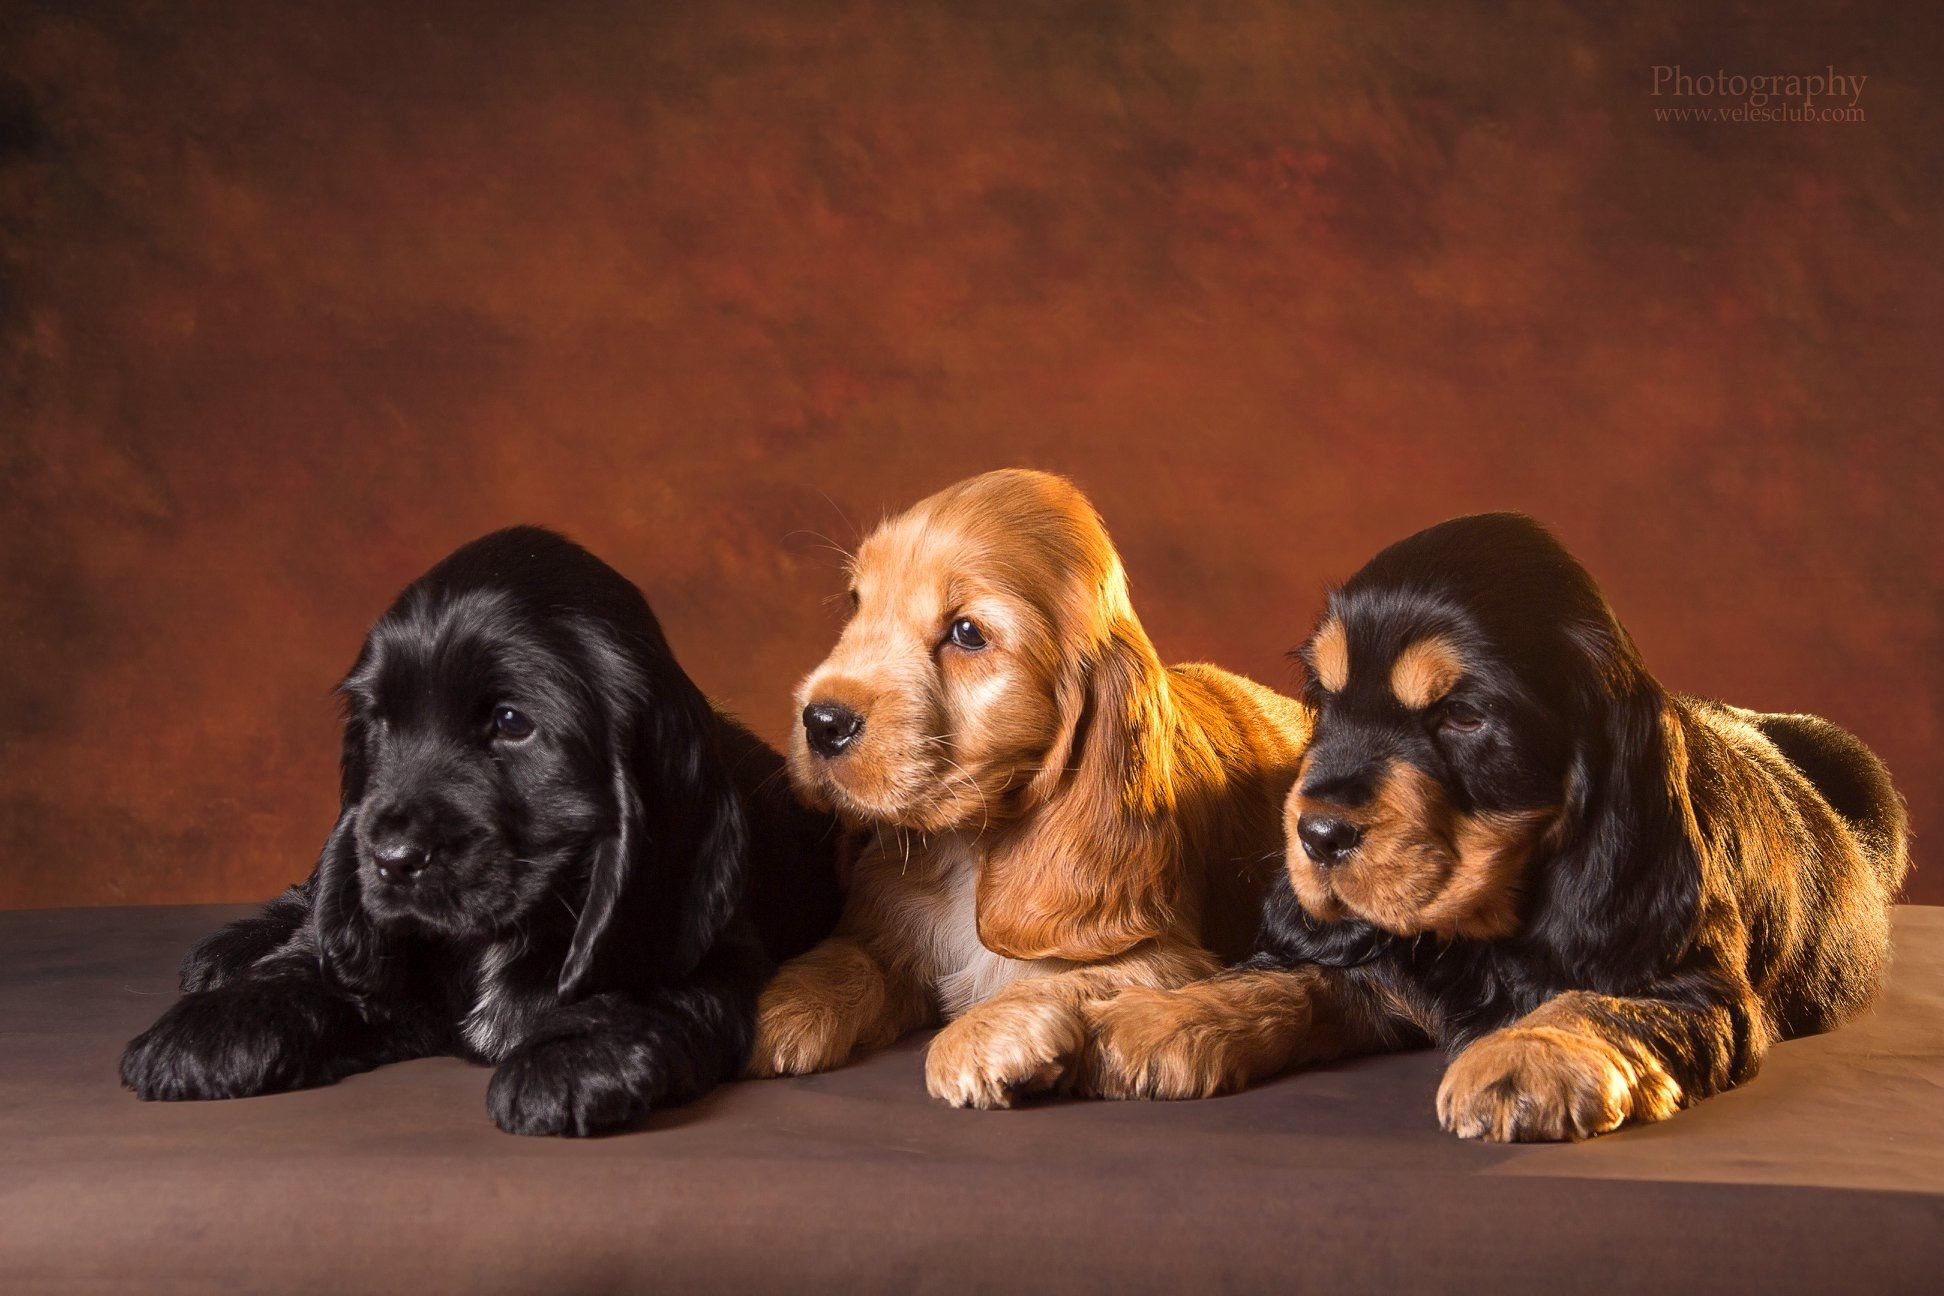 Pin By Jillian Wallace On Cocker Spaniel Ingles Cute Puppies Dogs Cocker Spaniel Puppies